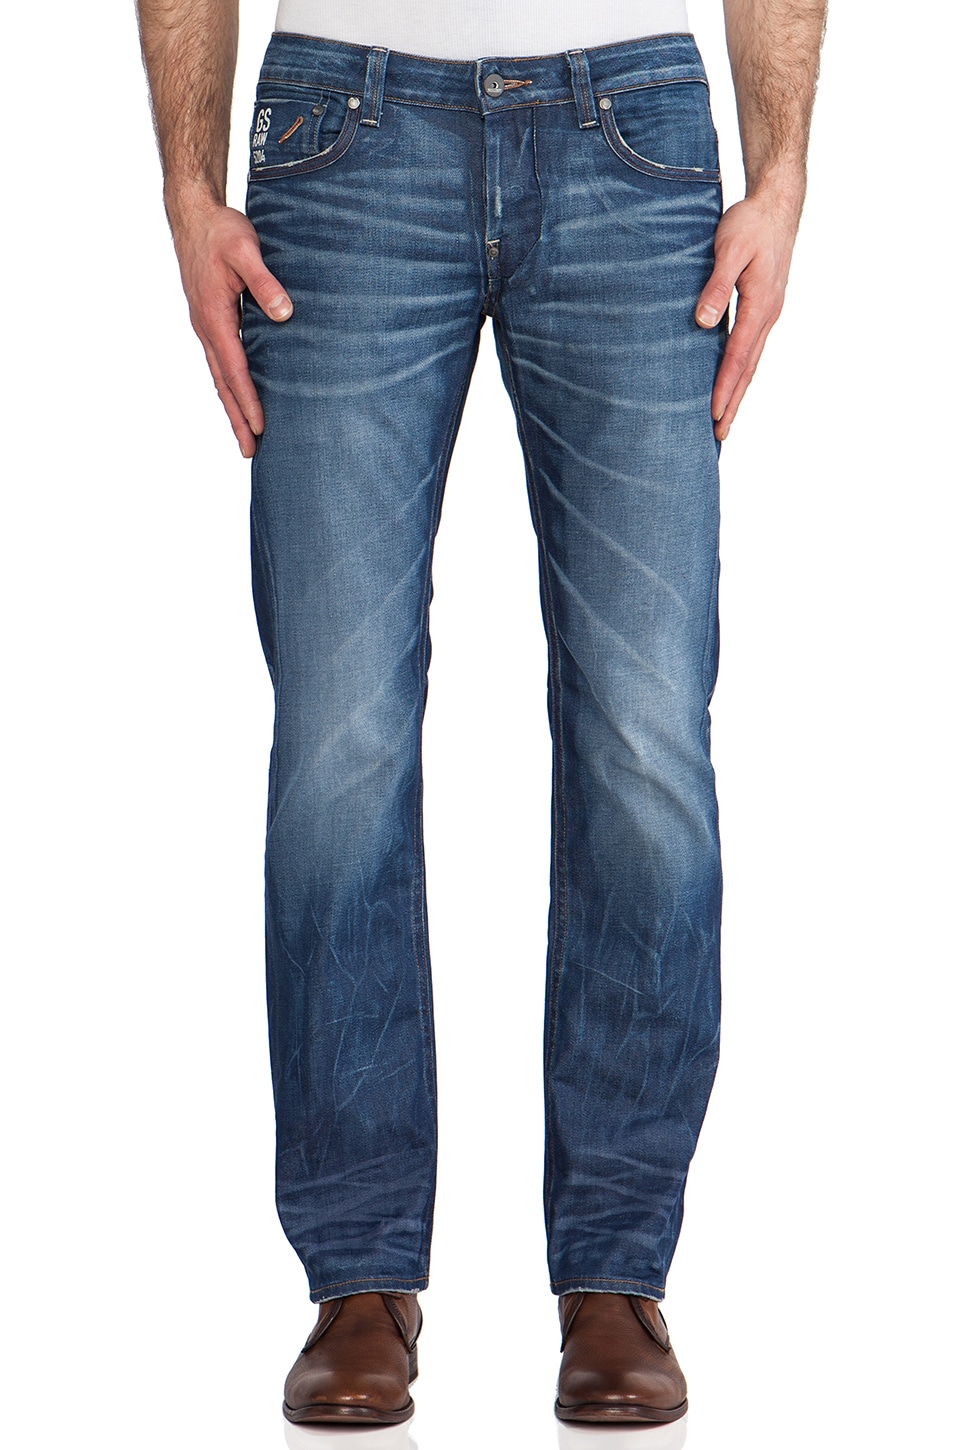 G-Star Attacc Low Straight Lexicon Denim in Medium Aged